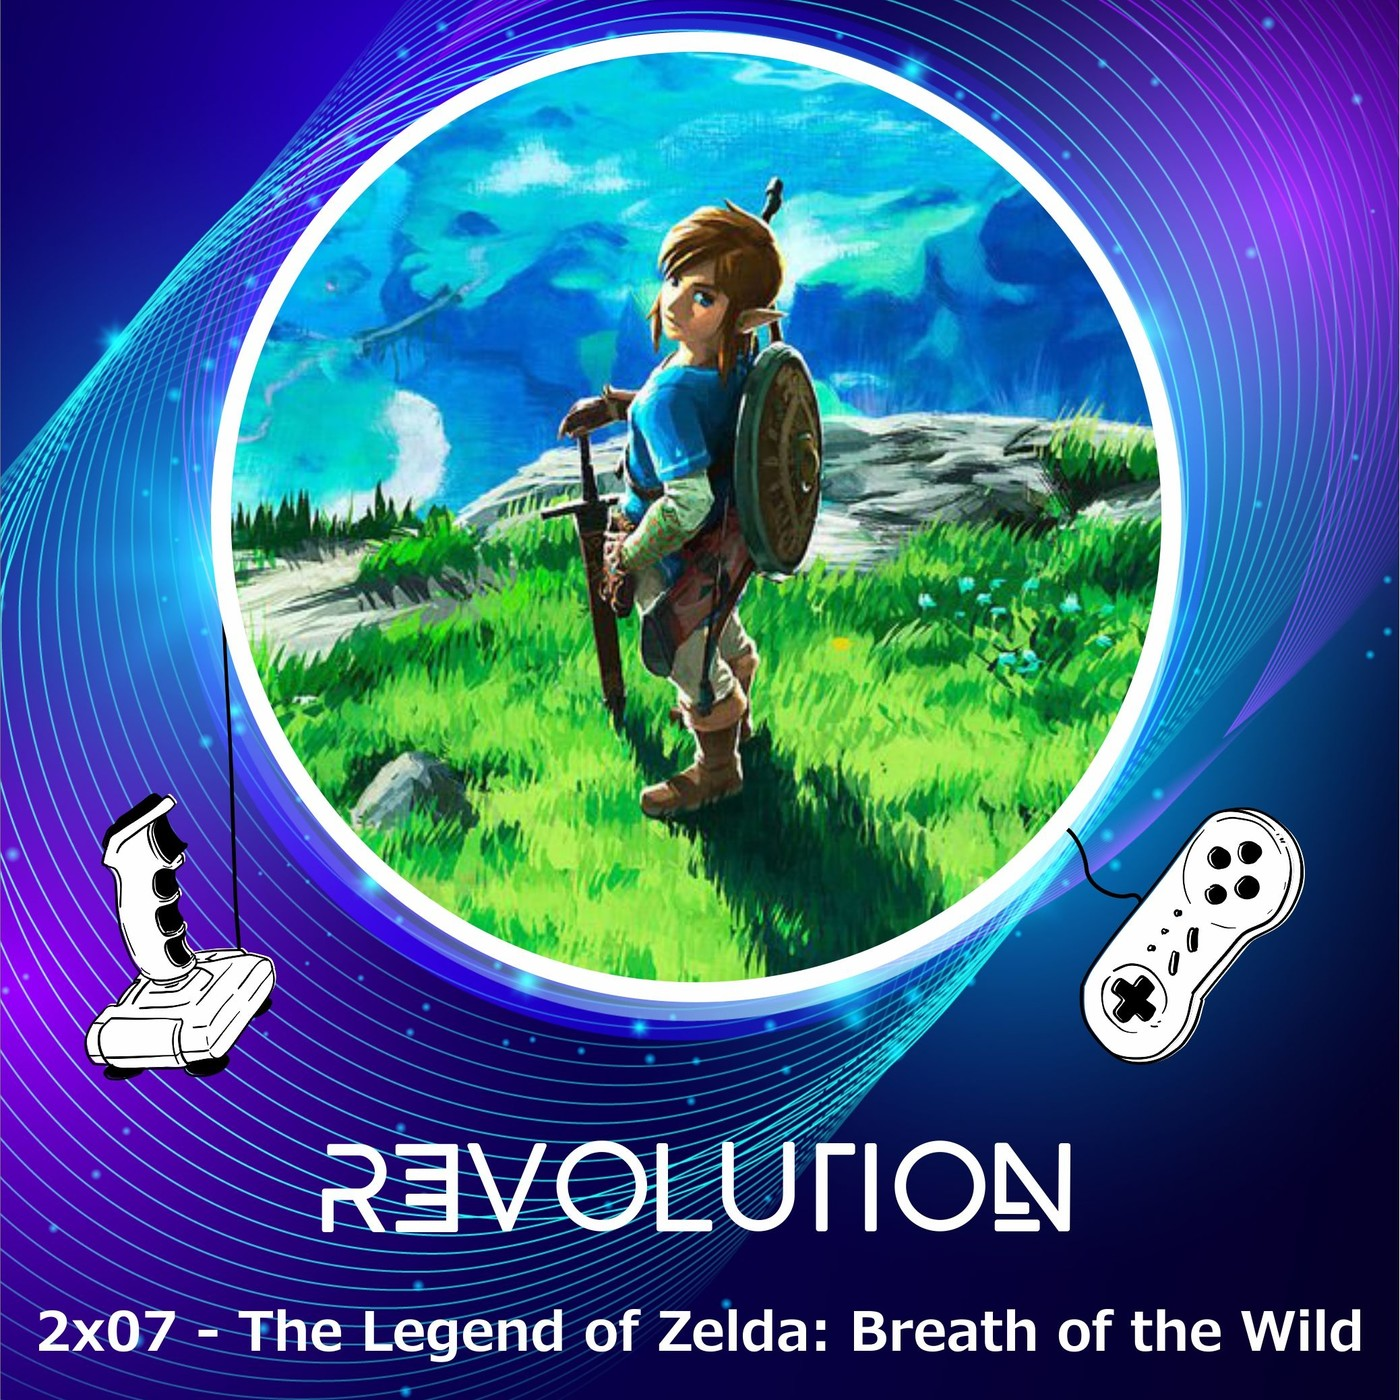 Revolution Podcast - 2x07 - The Legend Of Zelda: Breath Of The Wild